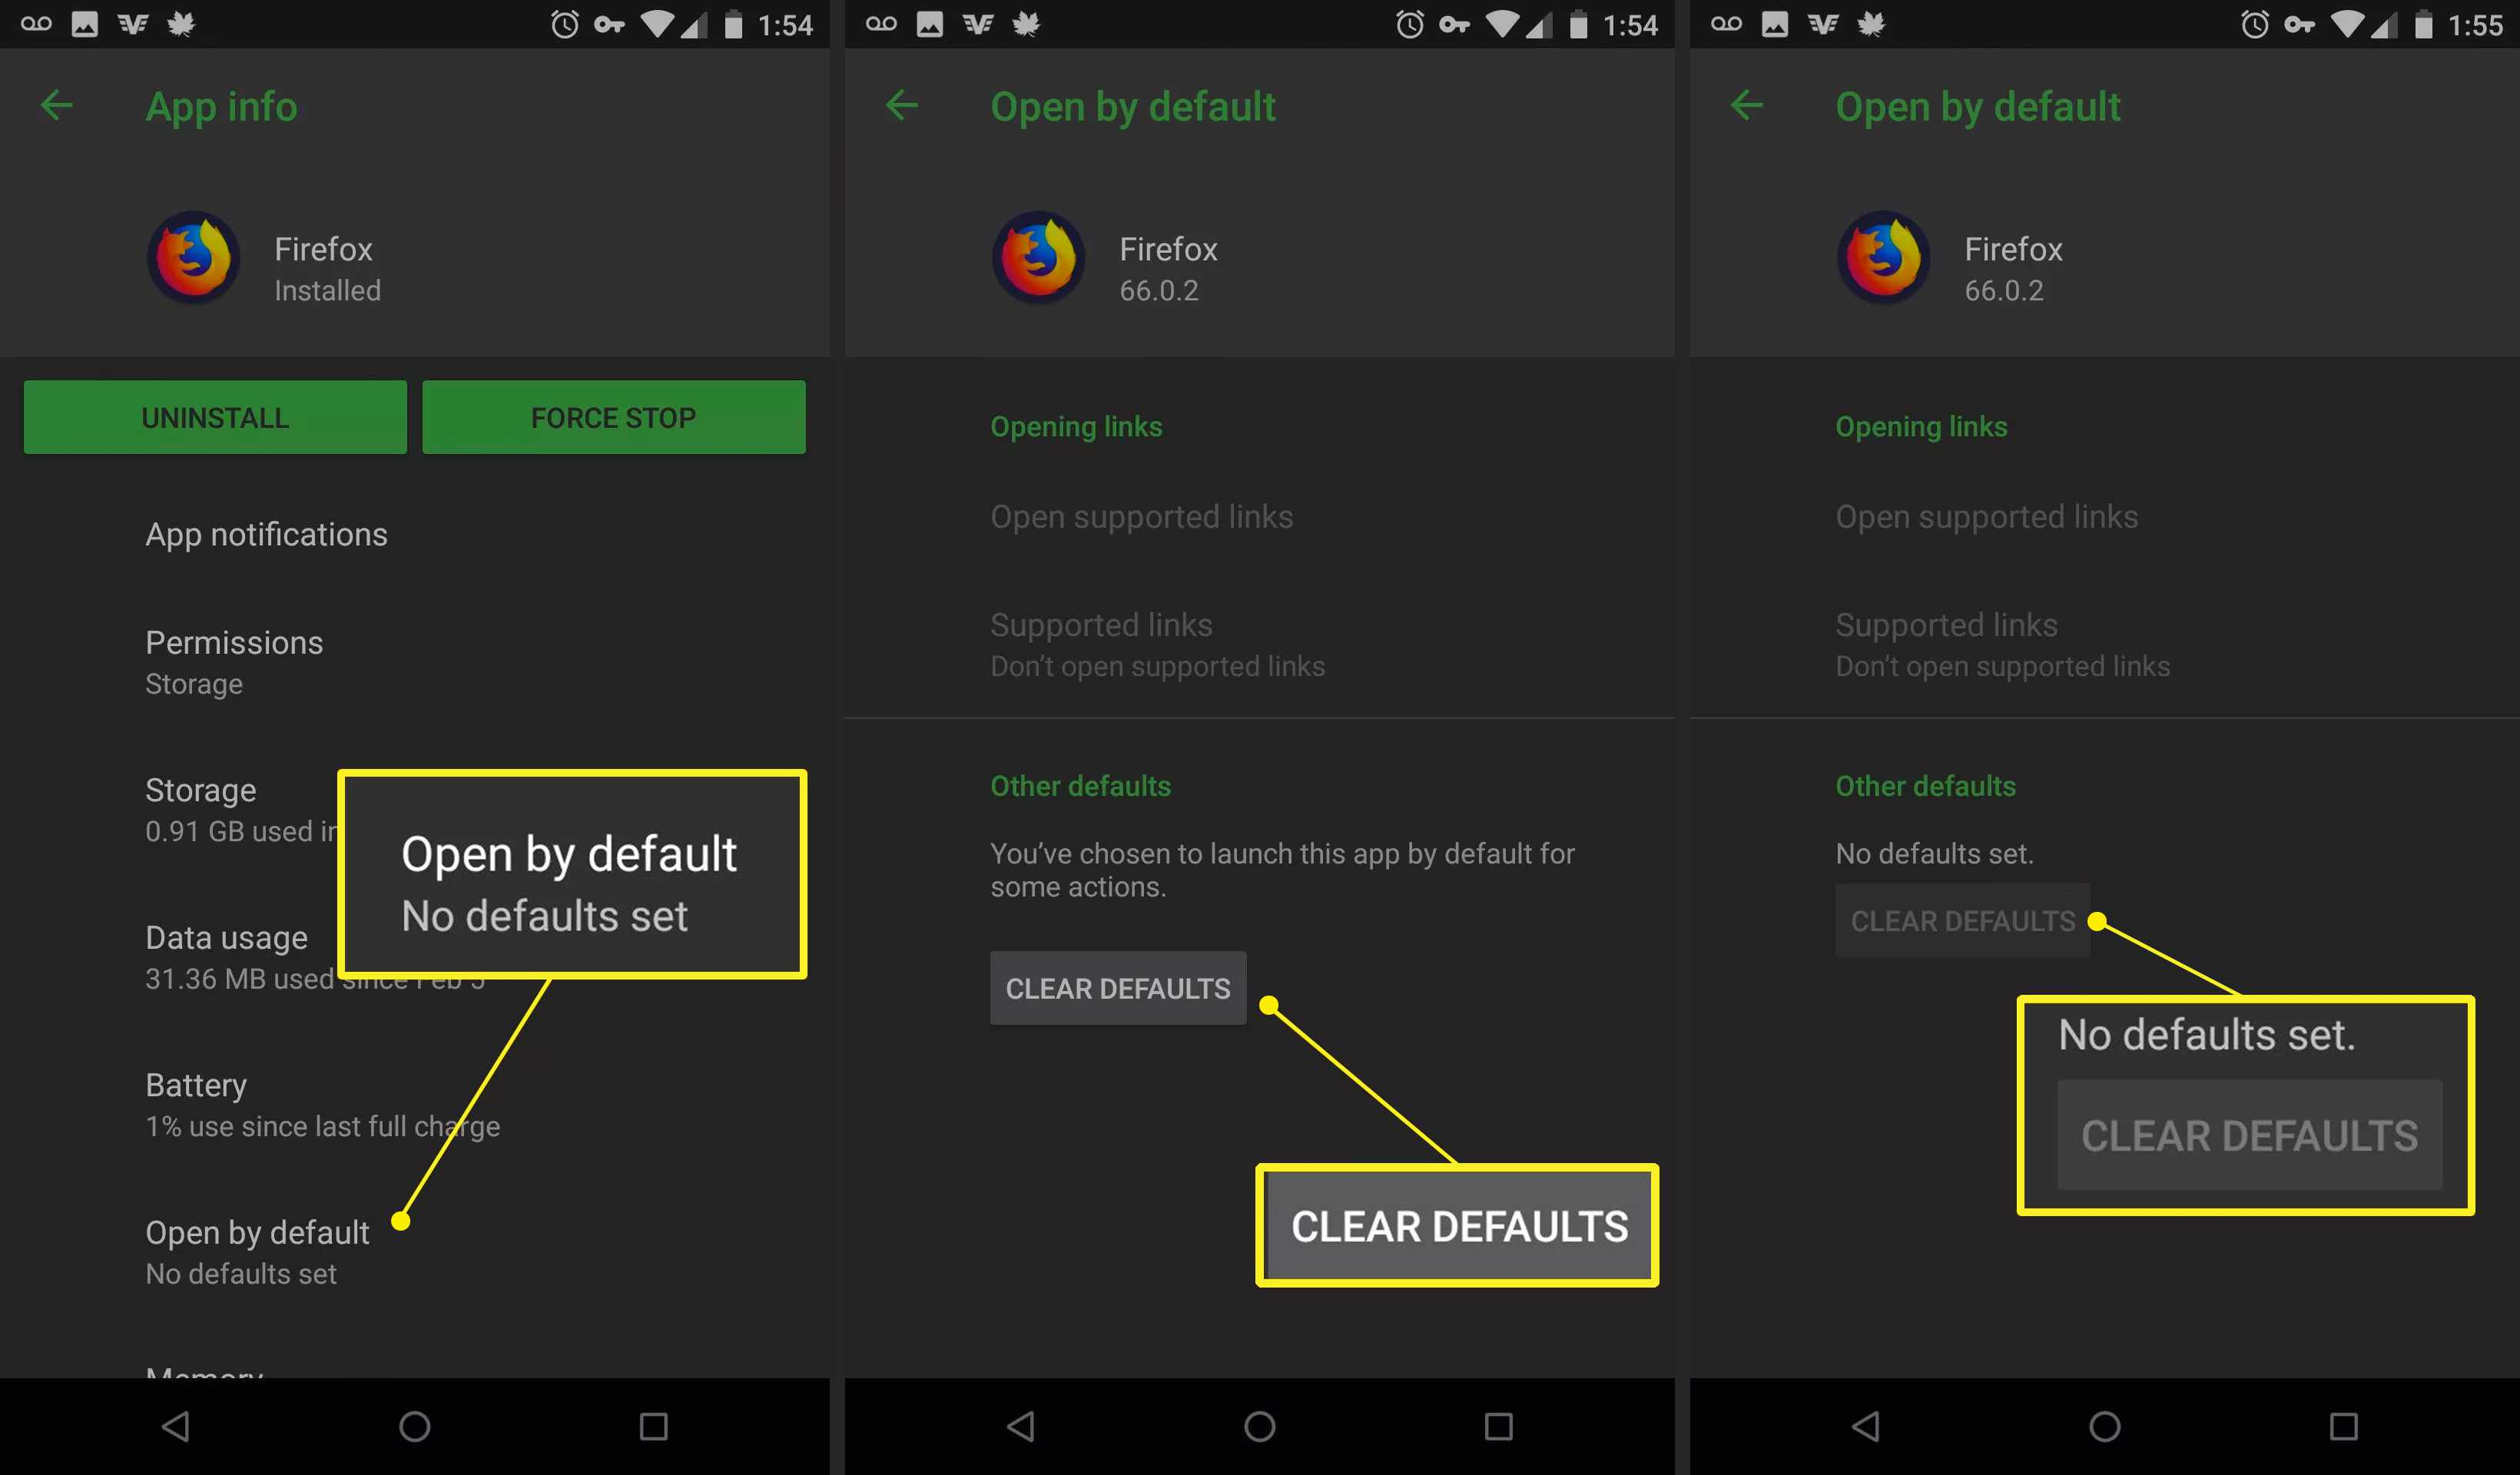 Android Open by default, Clear Defaults, No defaults set